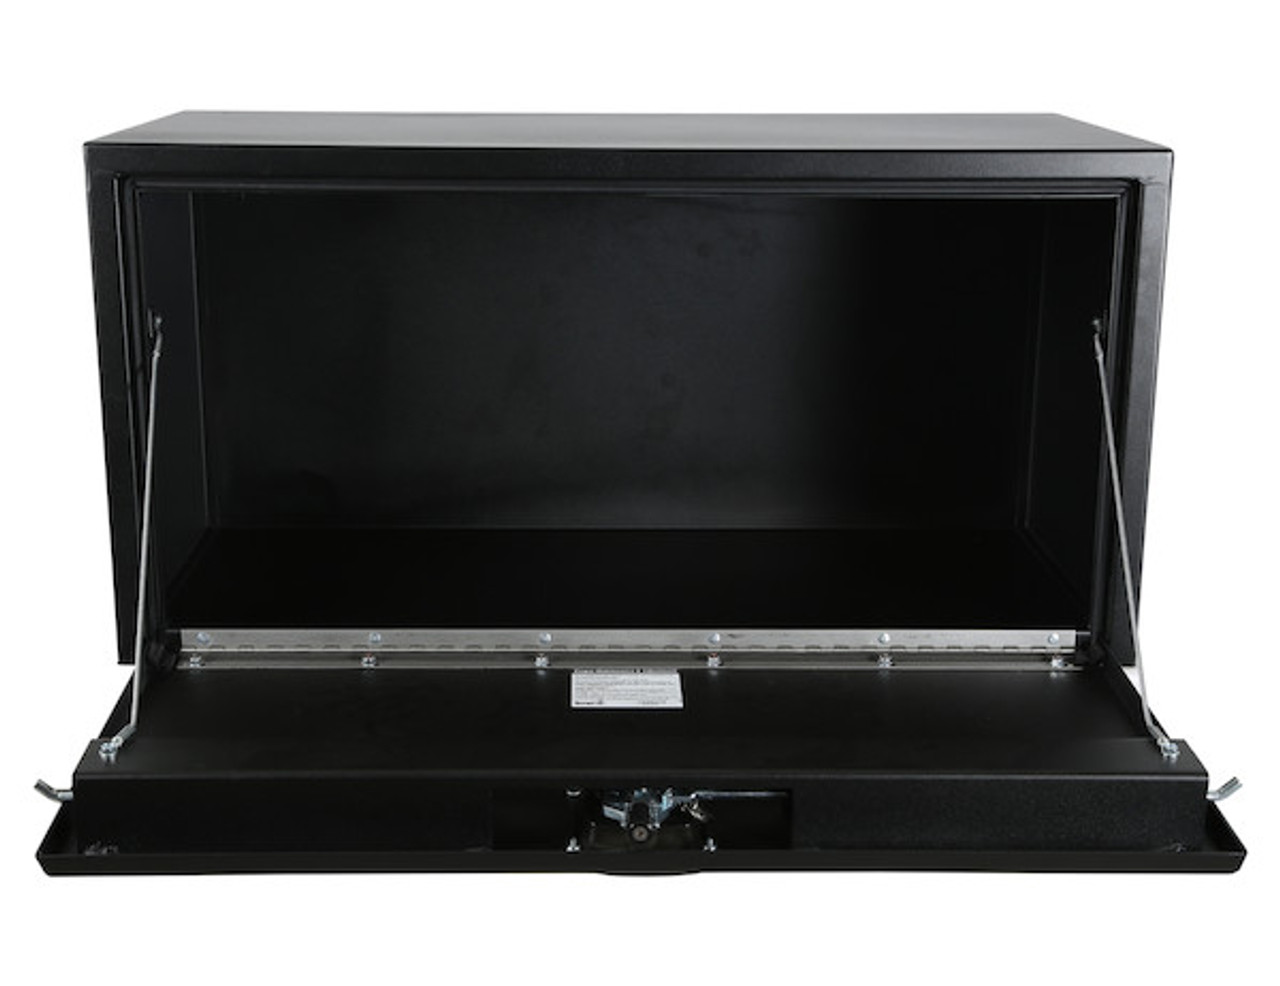 "1732510 BUYERS PRODUCTS TEXTURED MATTE BLACK STEEL UNDERBODY TRUCK TOOLBOX WITH 3-POINT LATCH 18""Hx18""Dx48""W  Picture # 5"